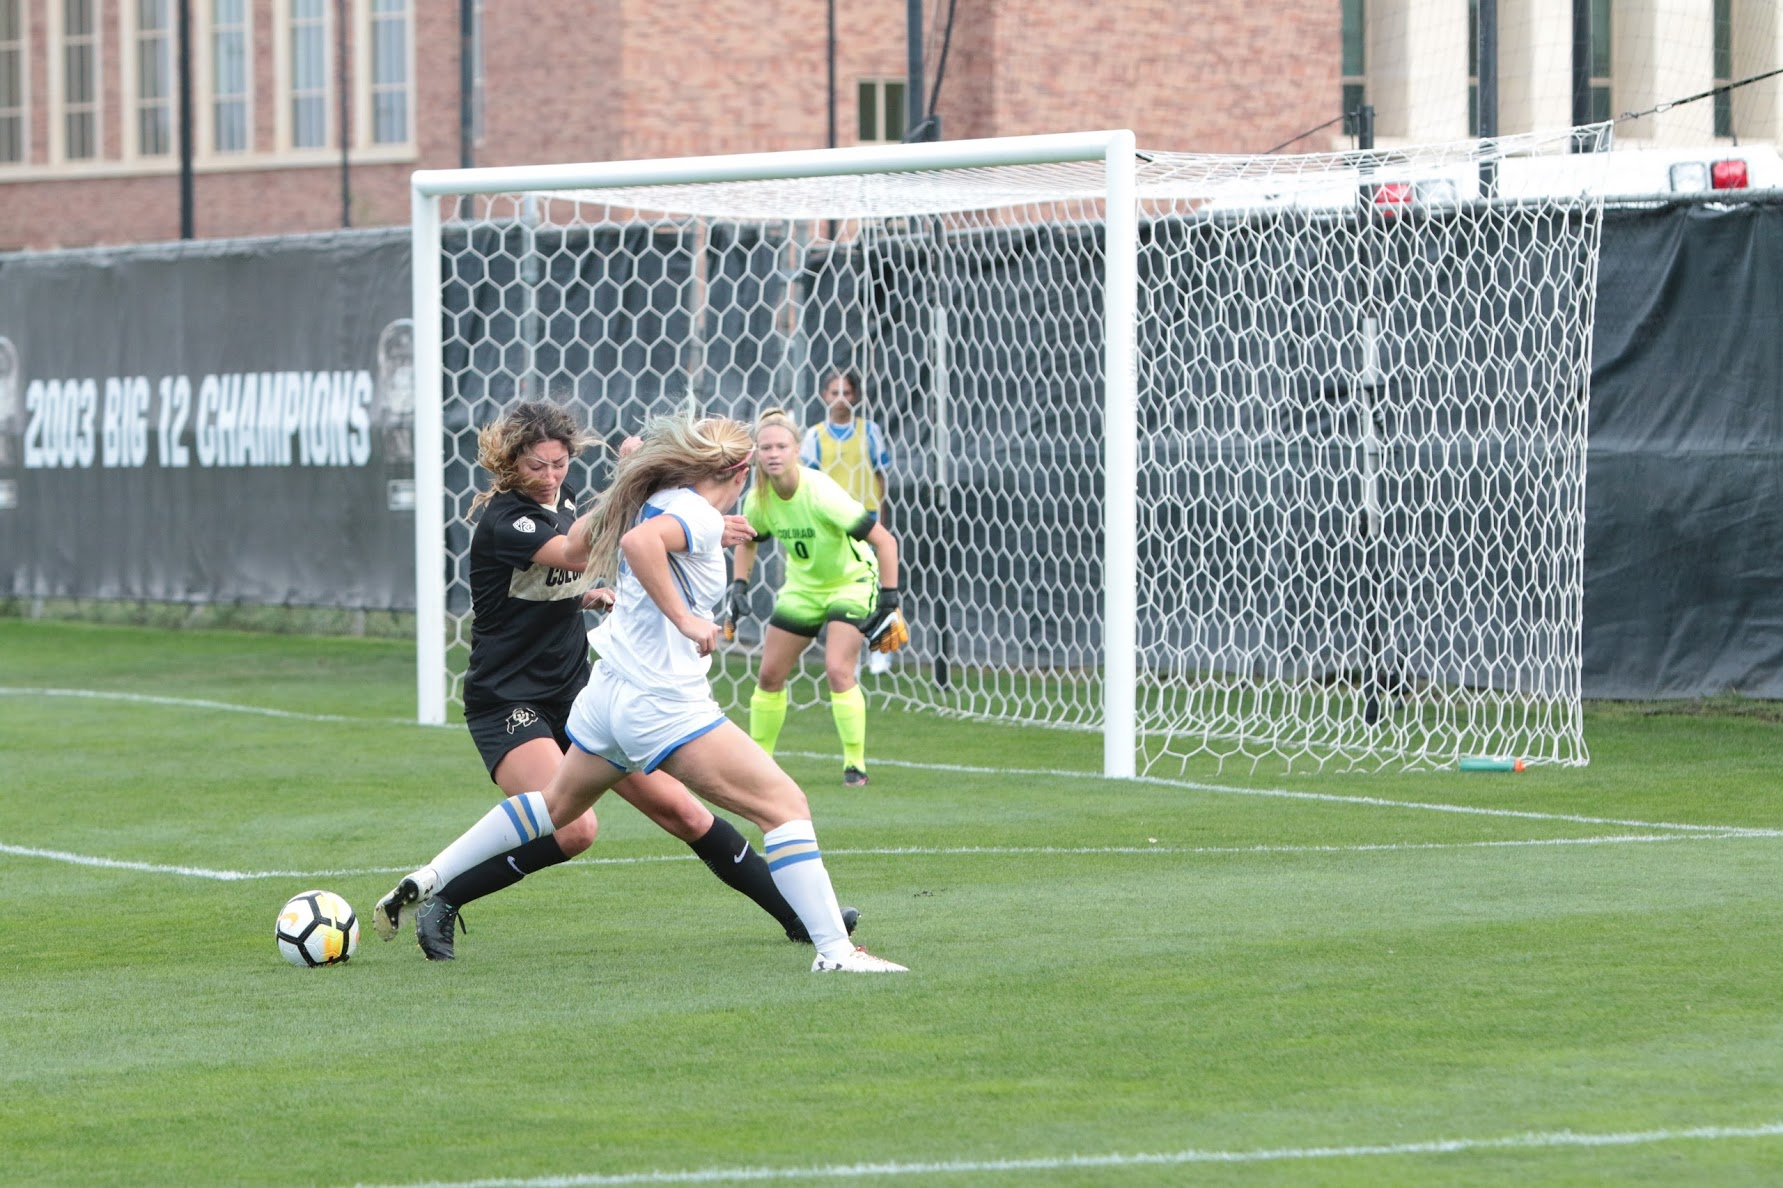 Colorado outdueled at home by No. 1 UCLA, as Buffs fall 2-0